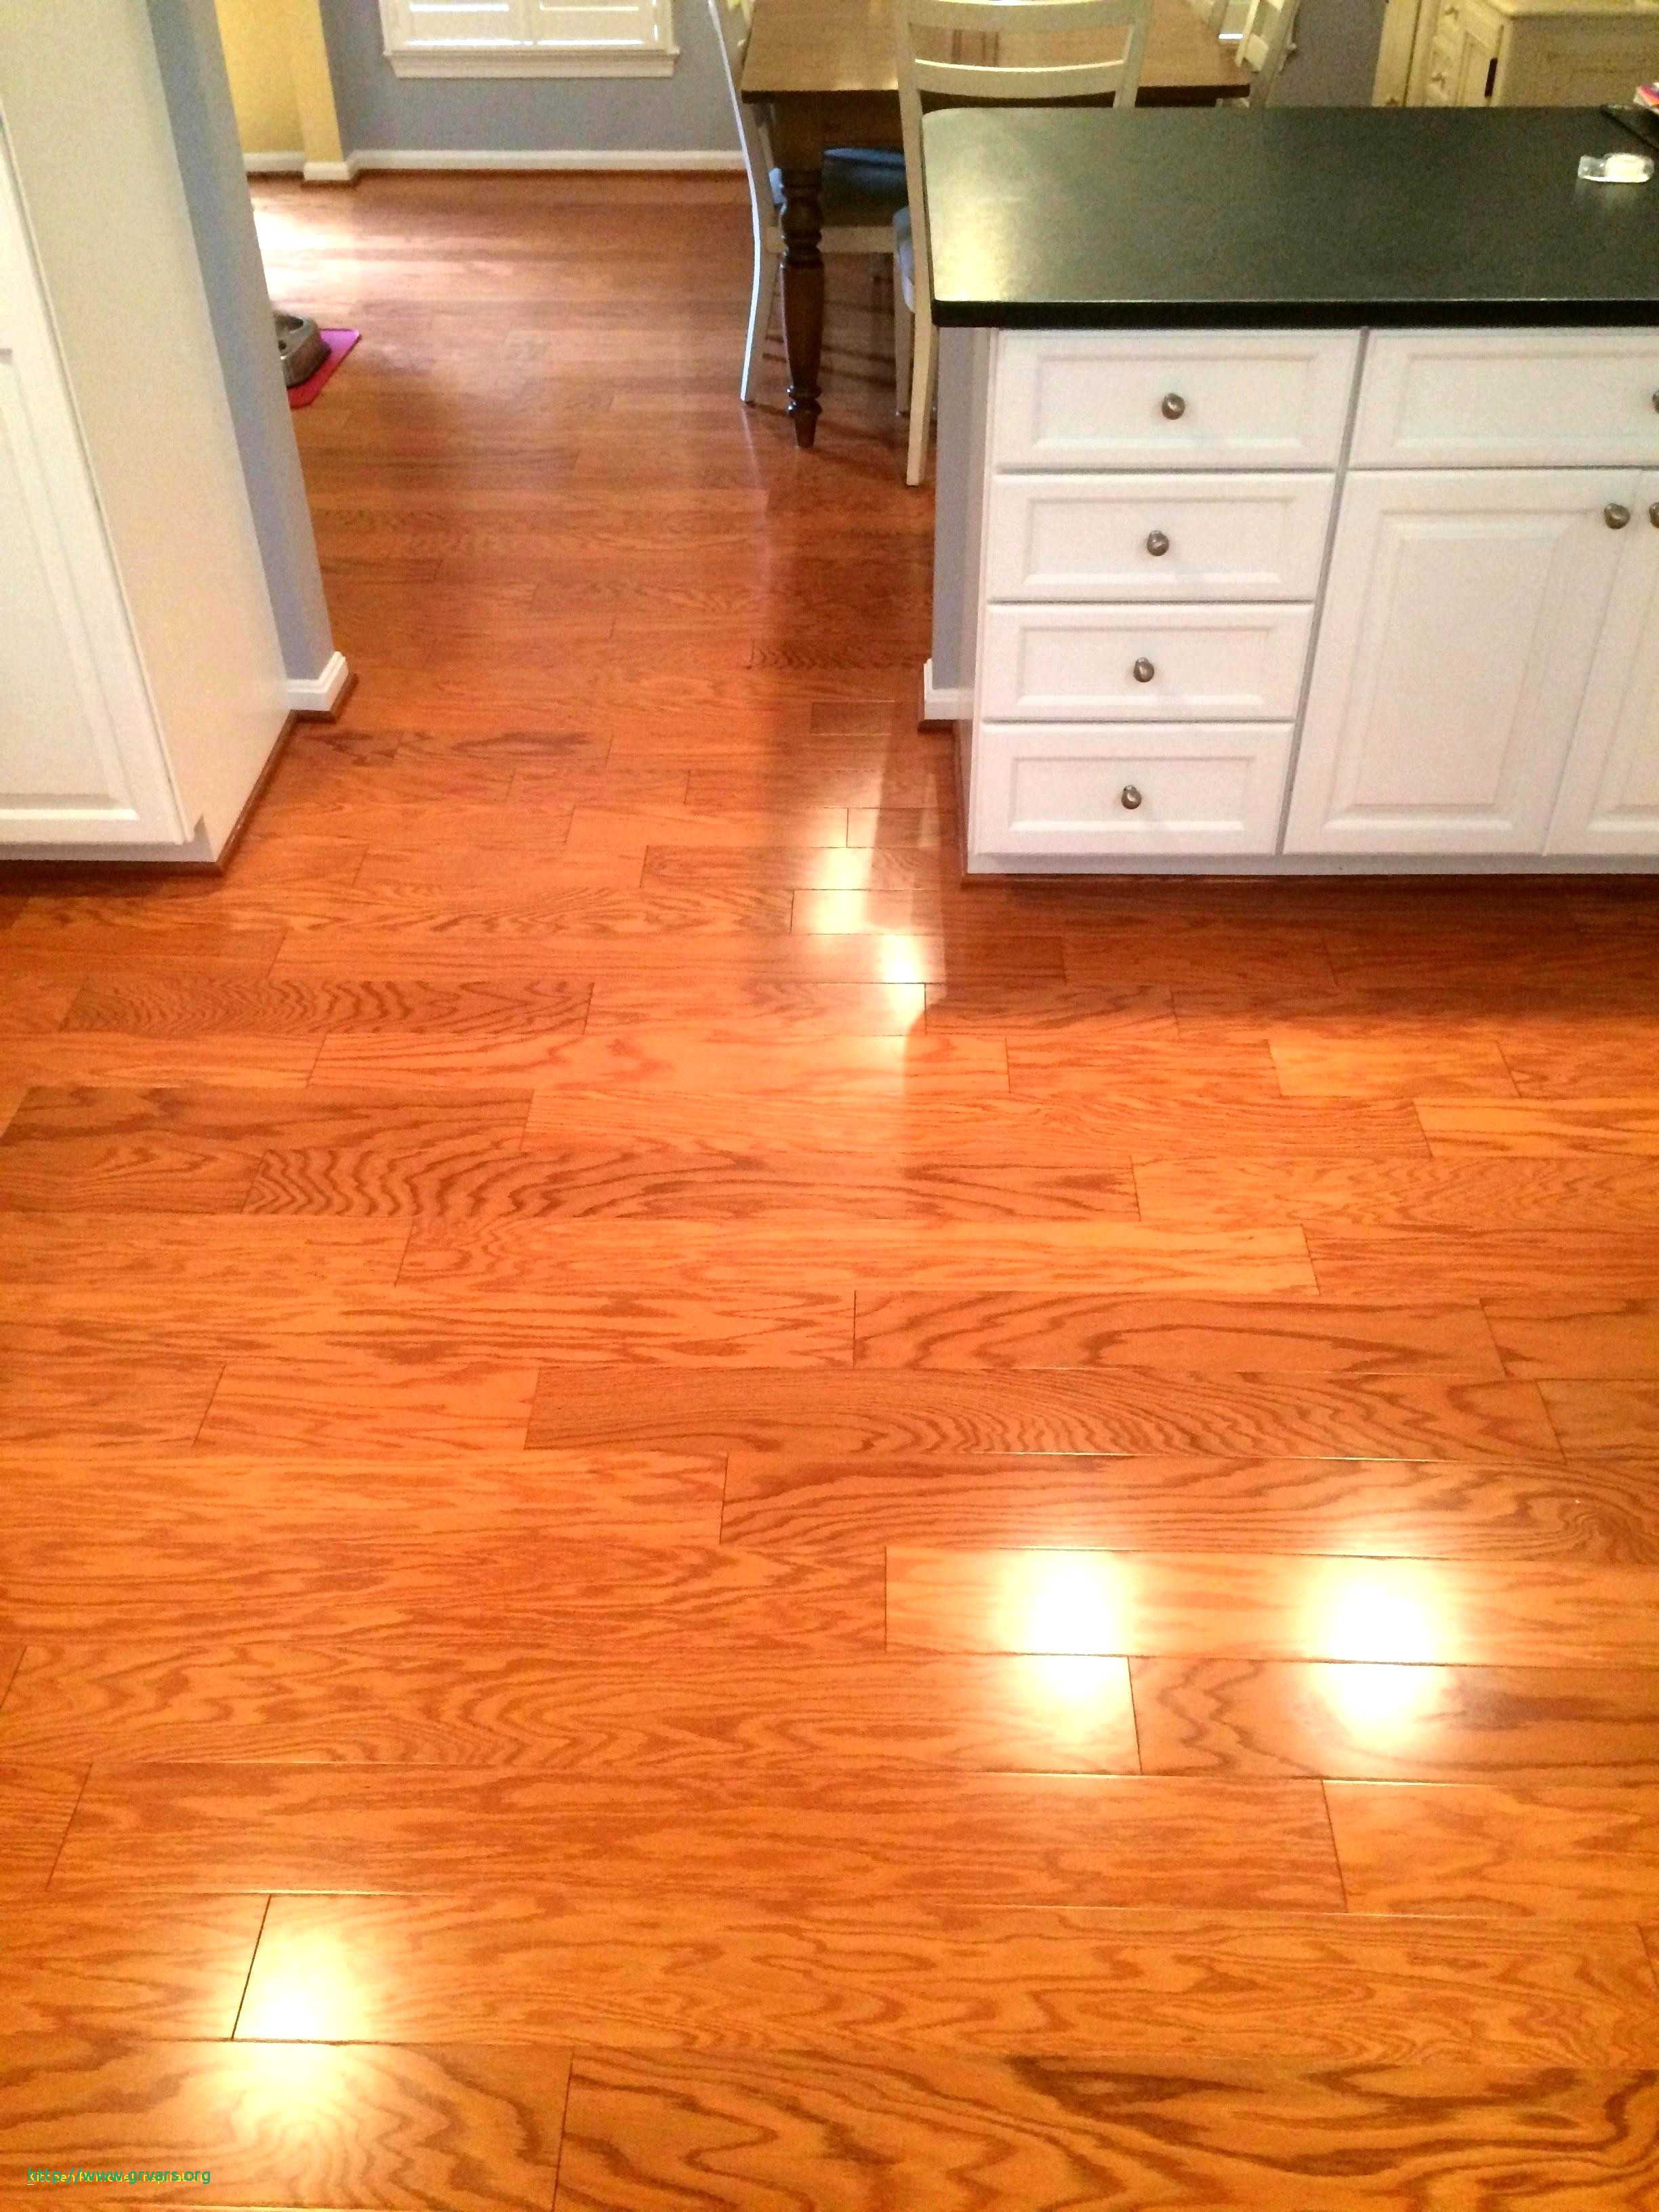 is bamboo hardwood flooring good of roll out laminate wood flooring 20 alagant best place to purchase inside roll out laminate wood flooring 20 alagant best place to purchase laminate flooring